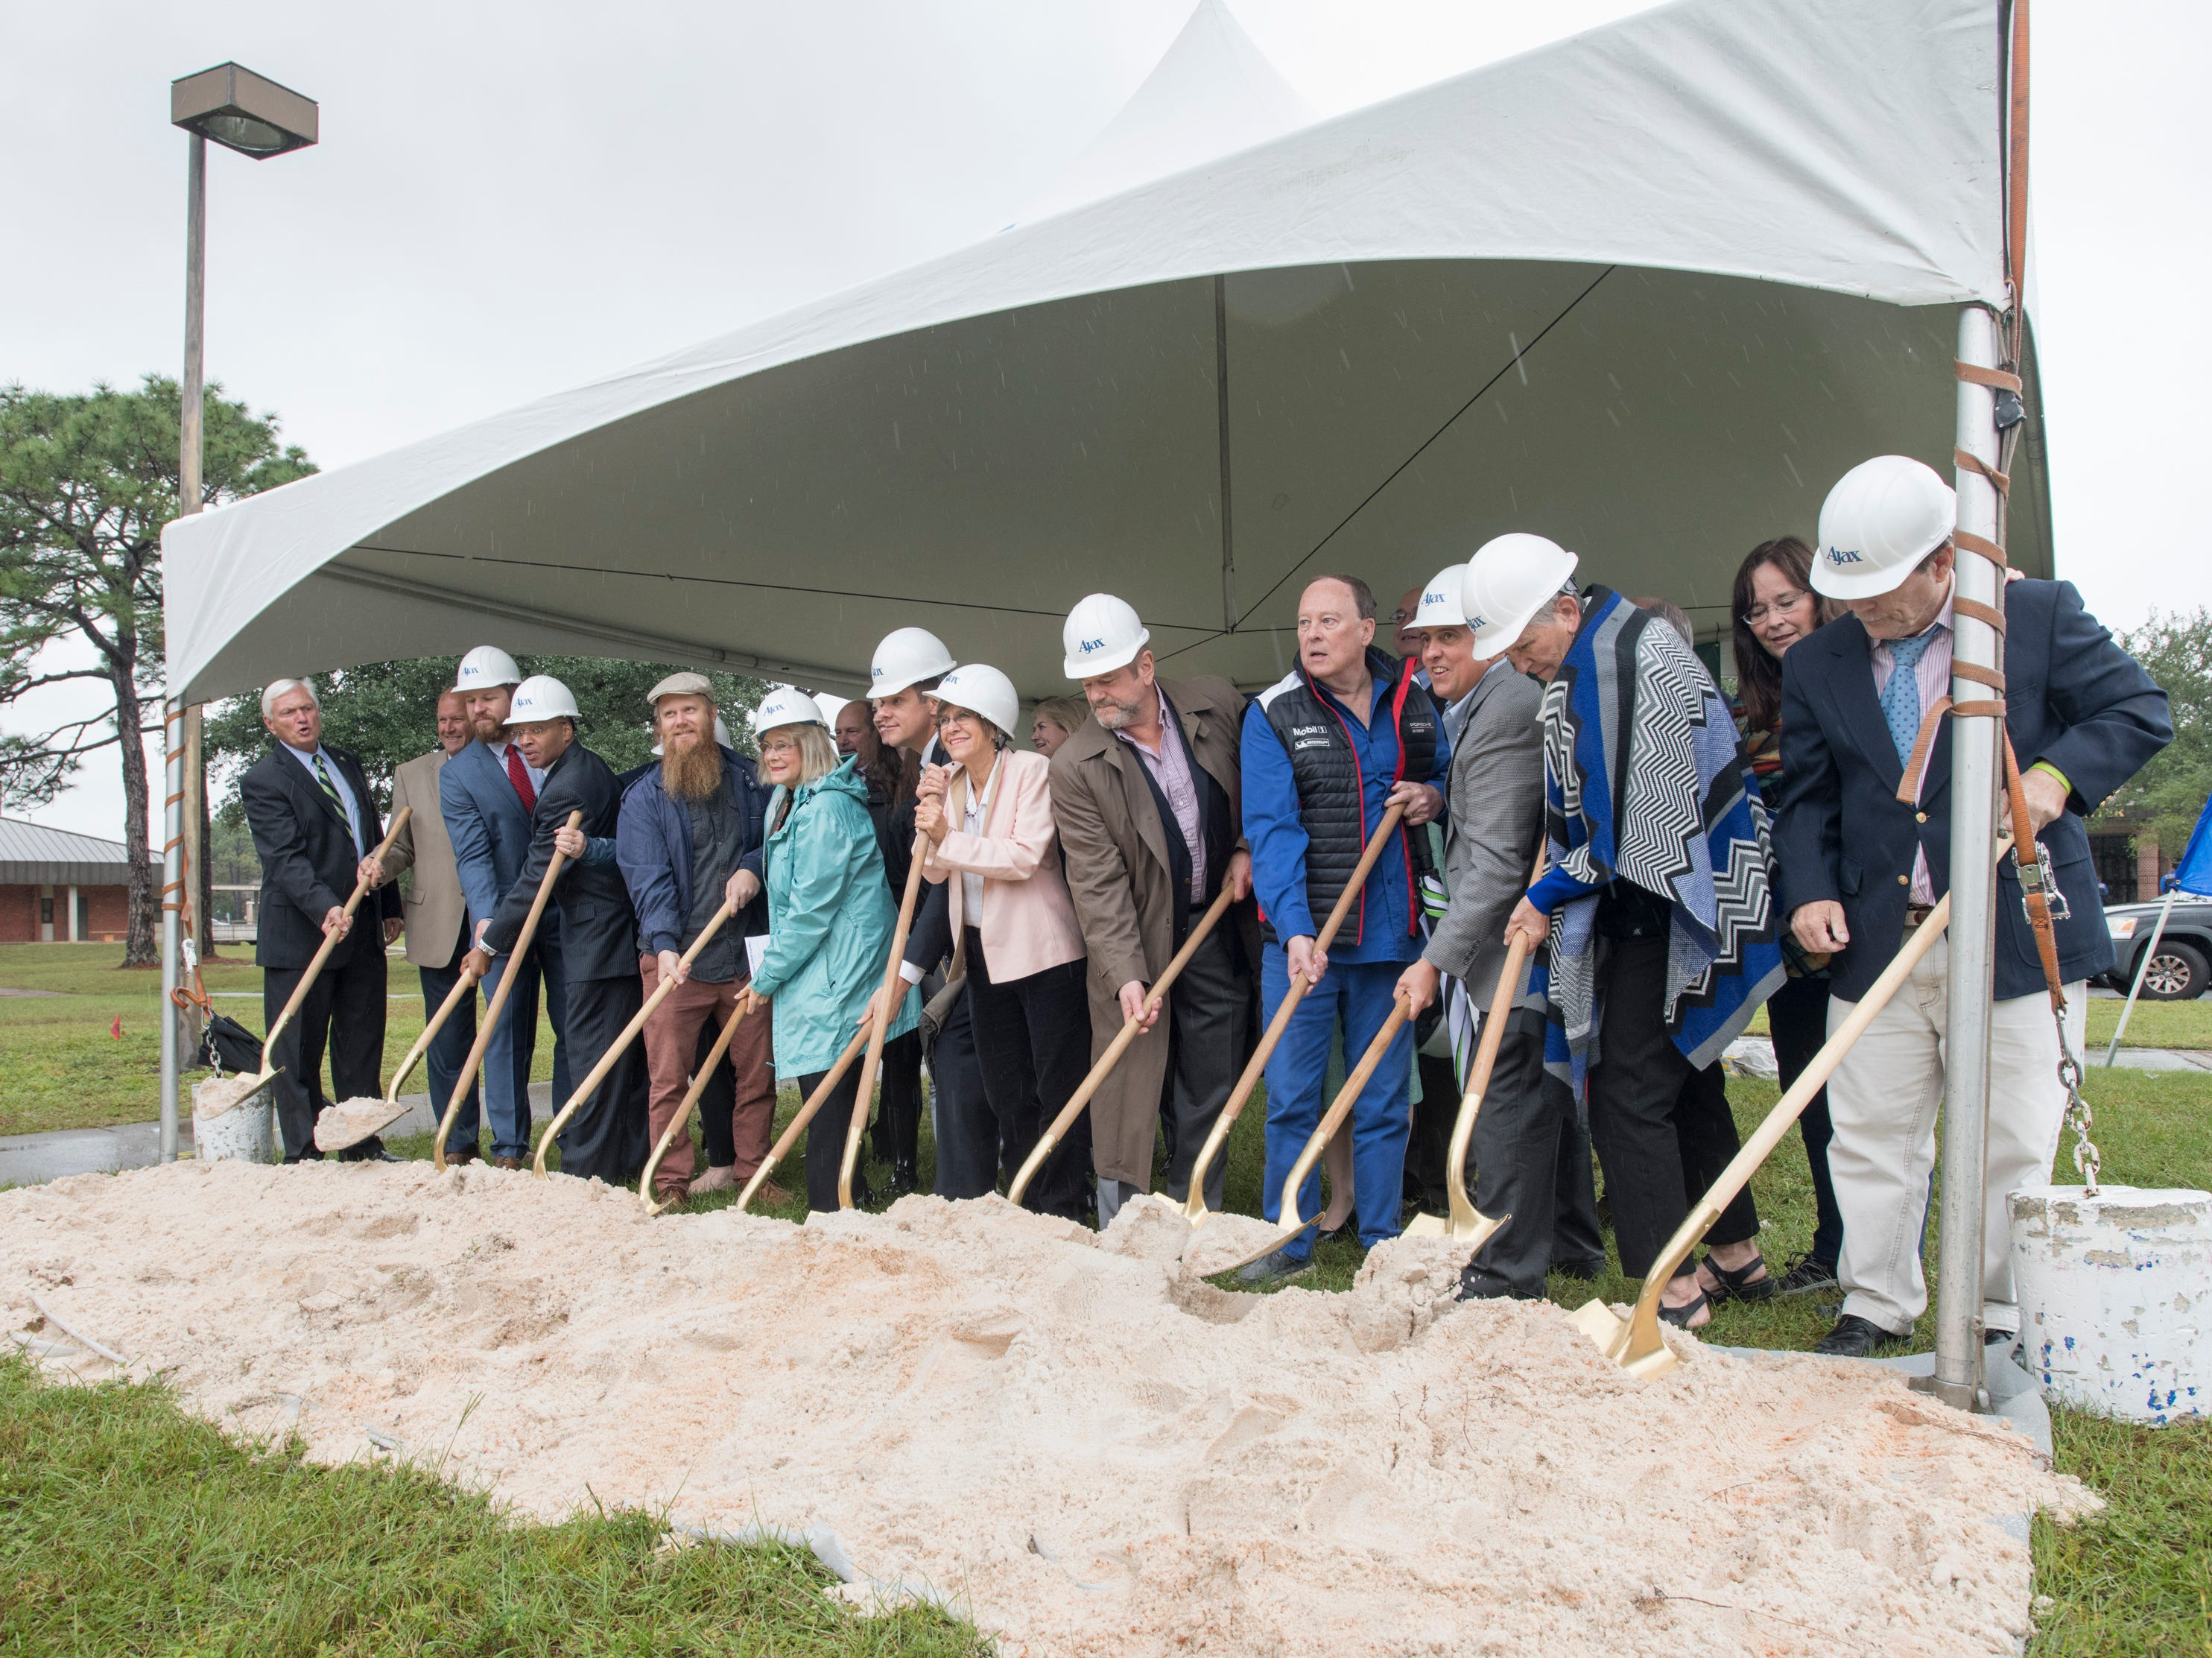 Pensacola State College breaks ground on east wing of new STEM building